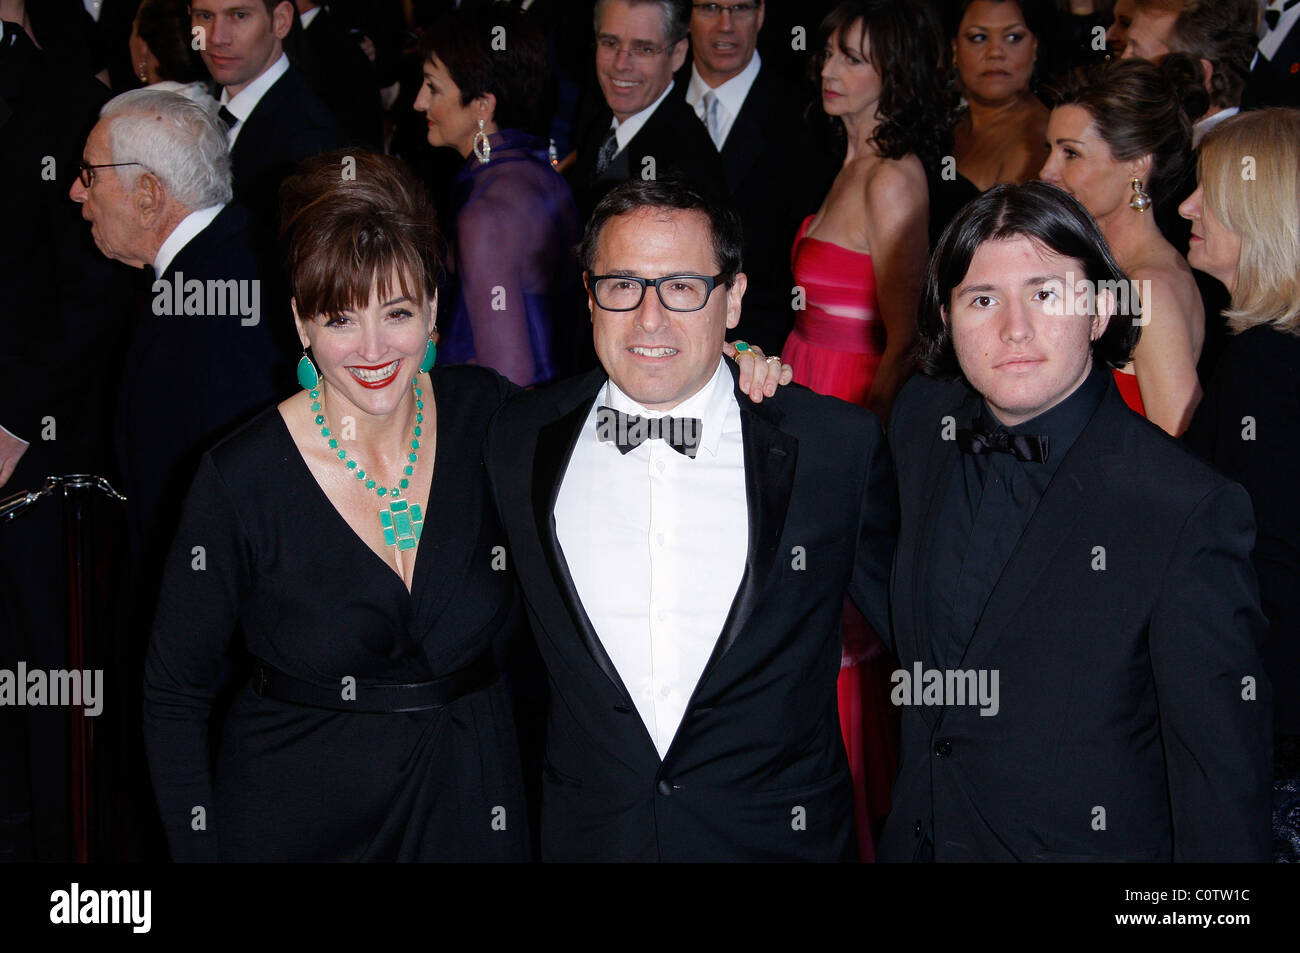 DAVID O. RUSSELL & GUESTS 83RD ACADEMY AWARDS RED CARPET ARRIVALS KODAK THEATRE LOS ANGELES CALIFORNIA USA 27 - Stock Image